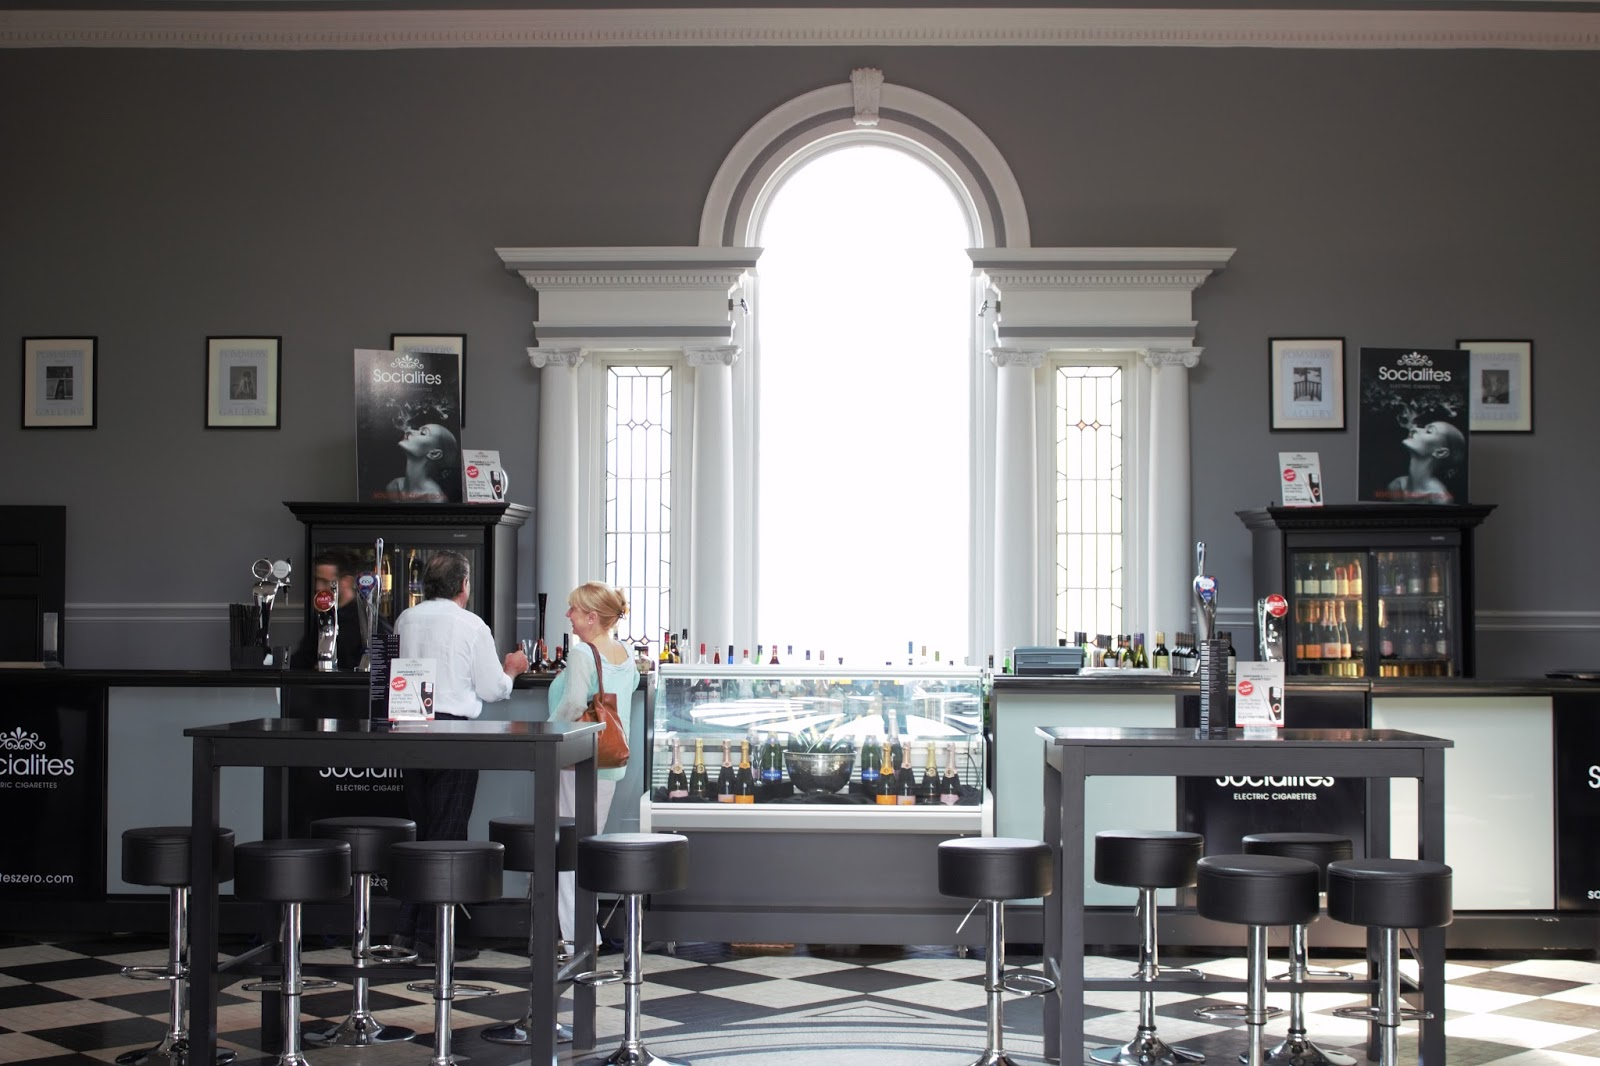 Bar at The Old Weighing Room, Doncaster